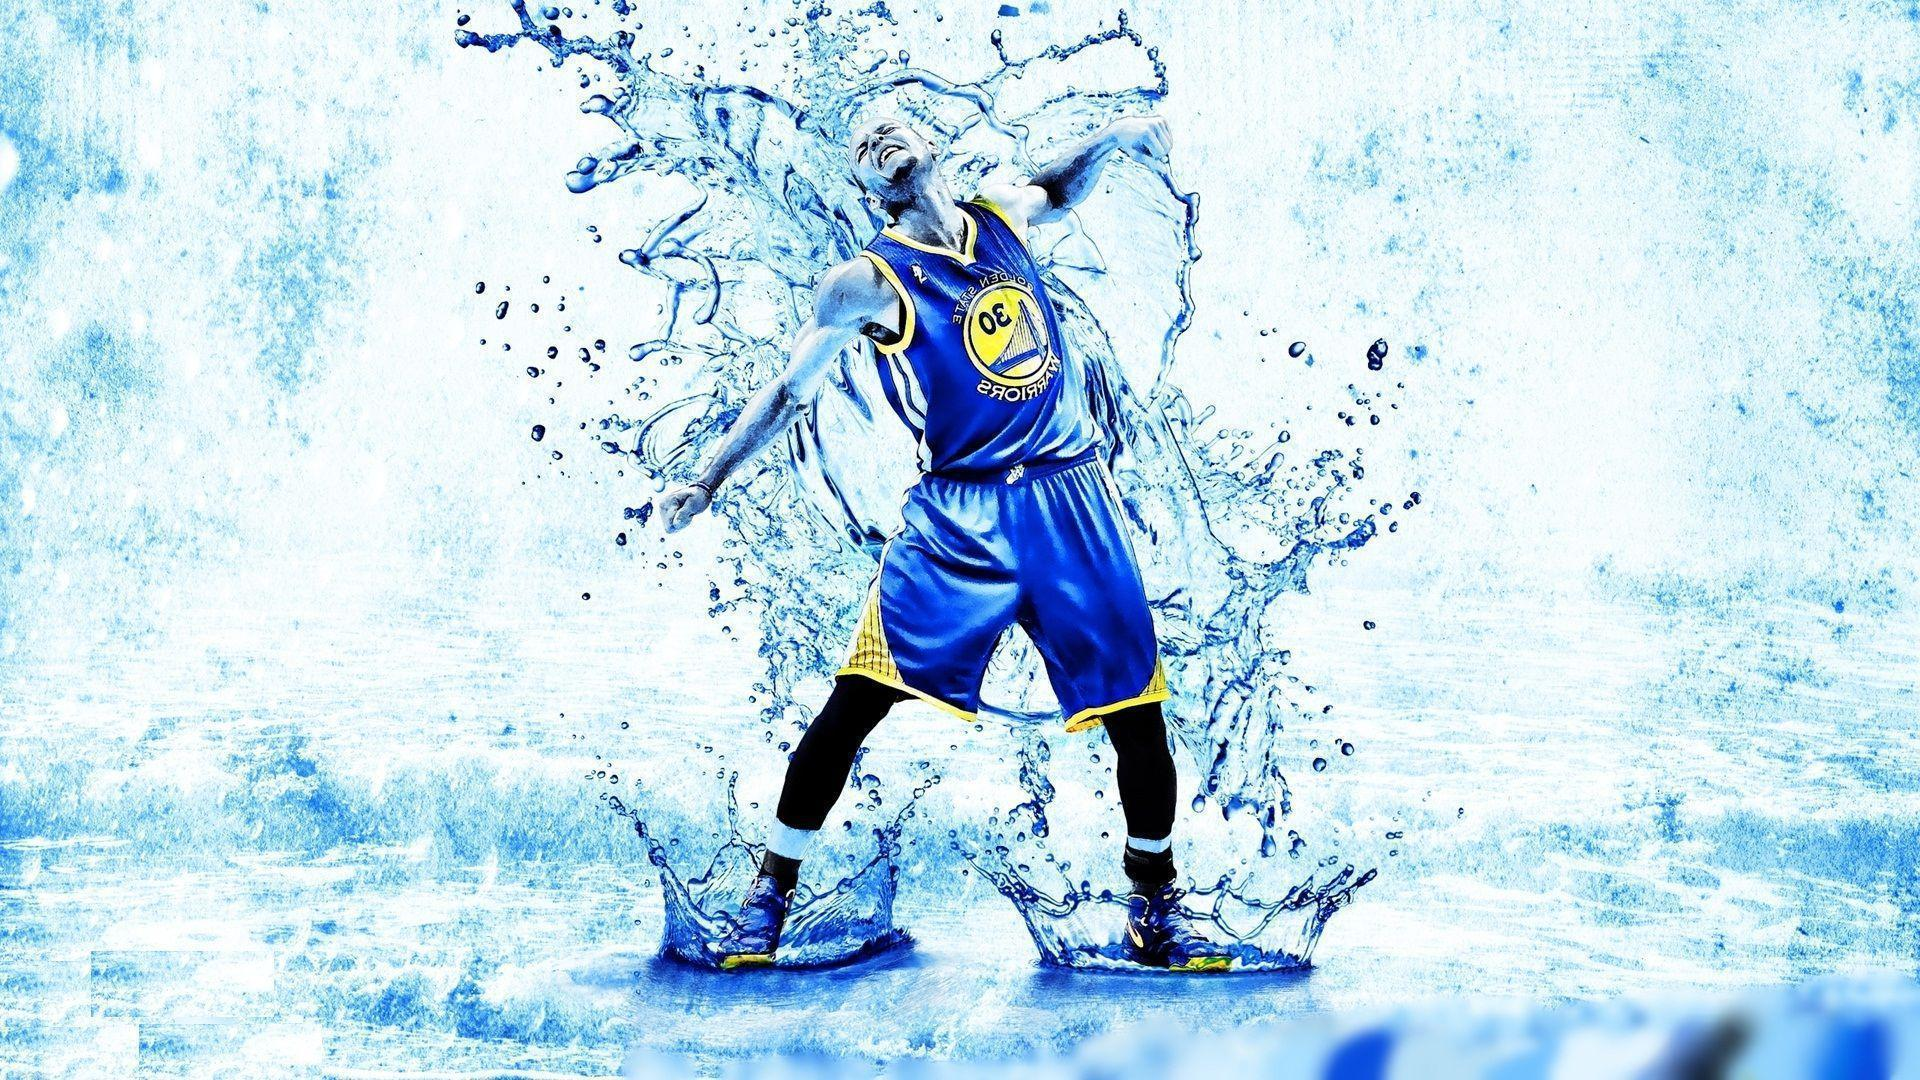 Stephen Curry HD Wallpapers | Download Free Desktop Wallpaper ...